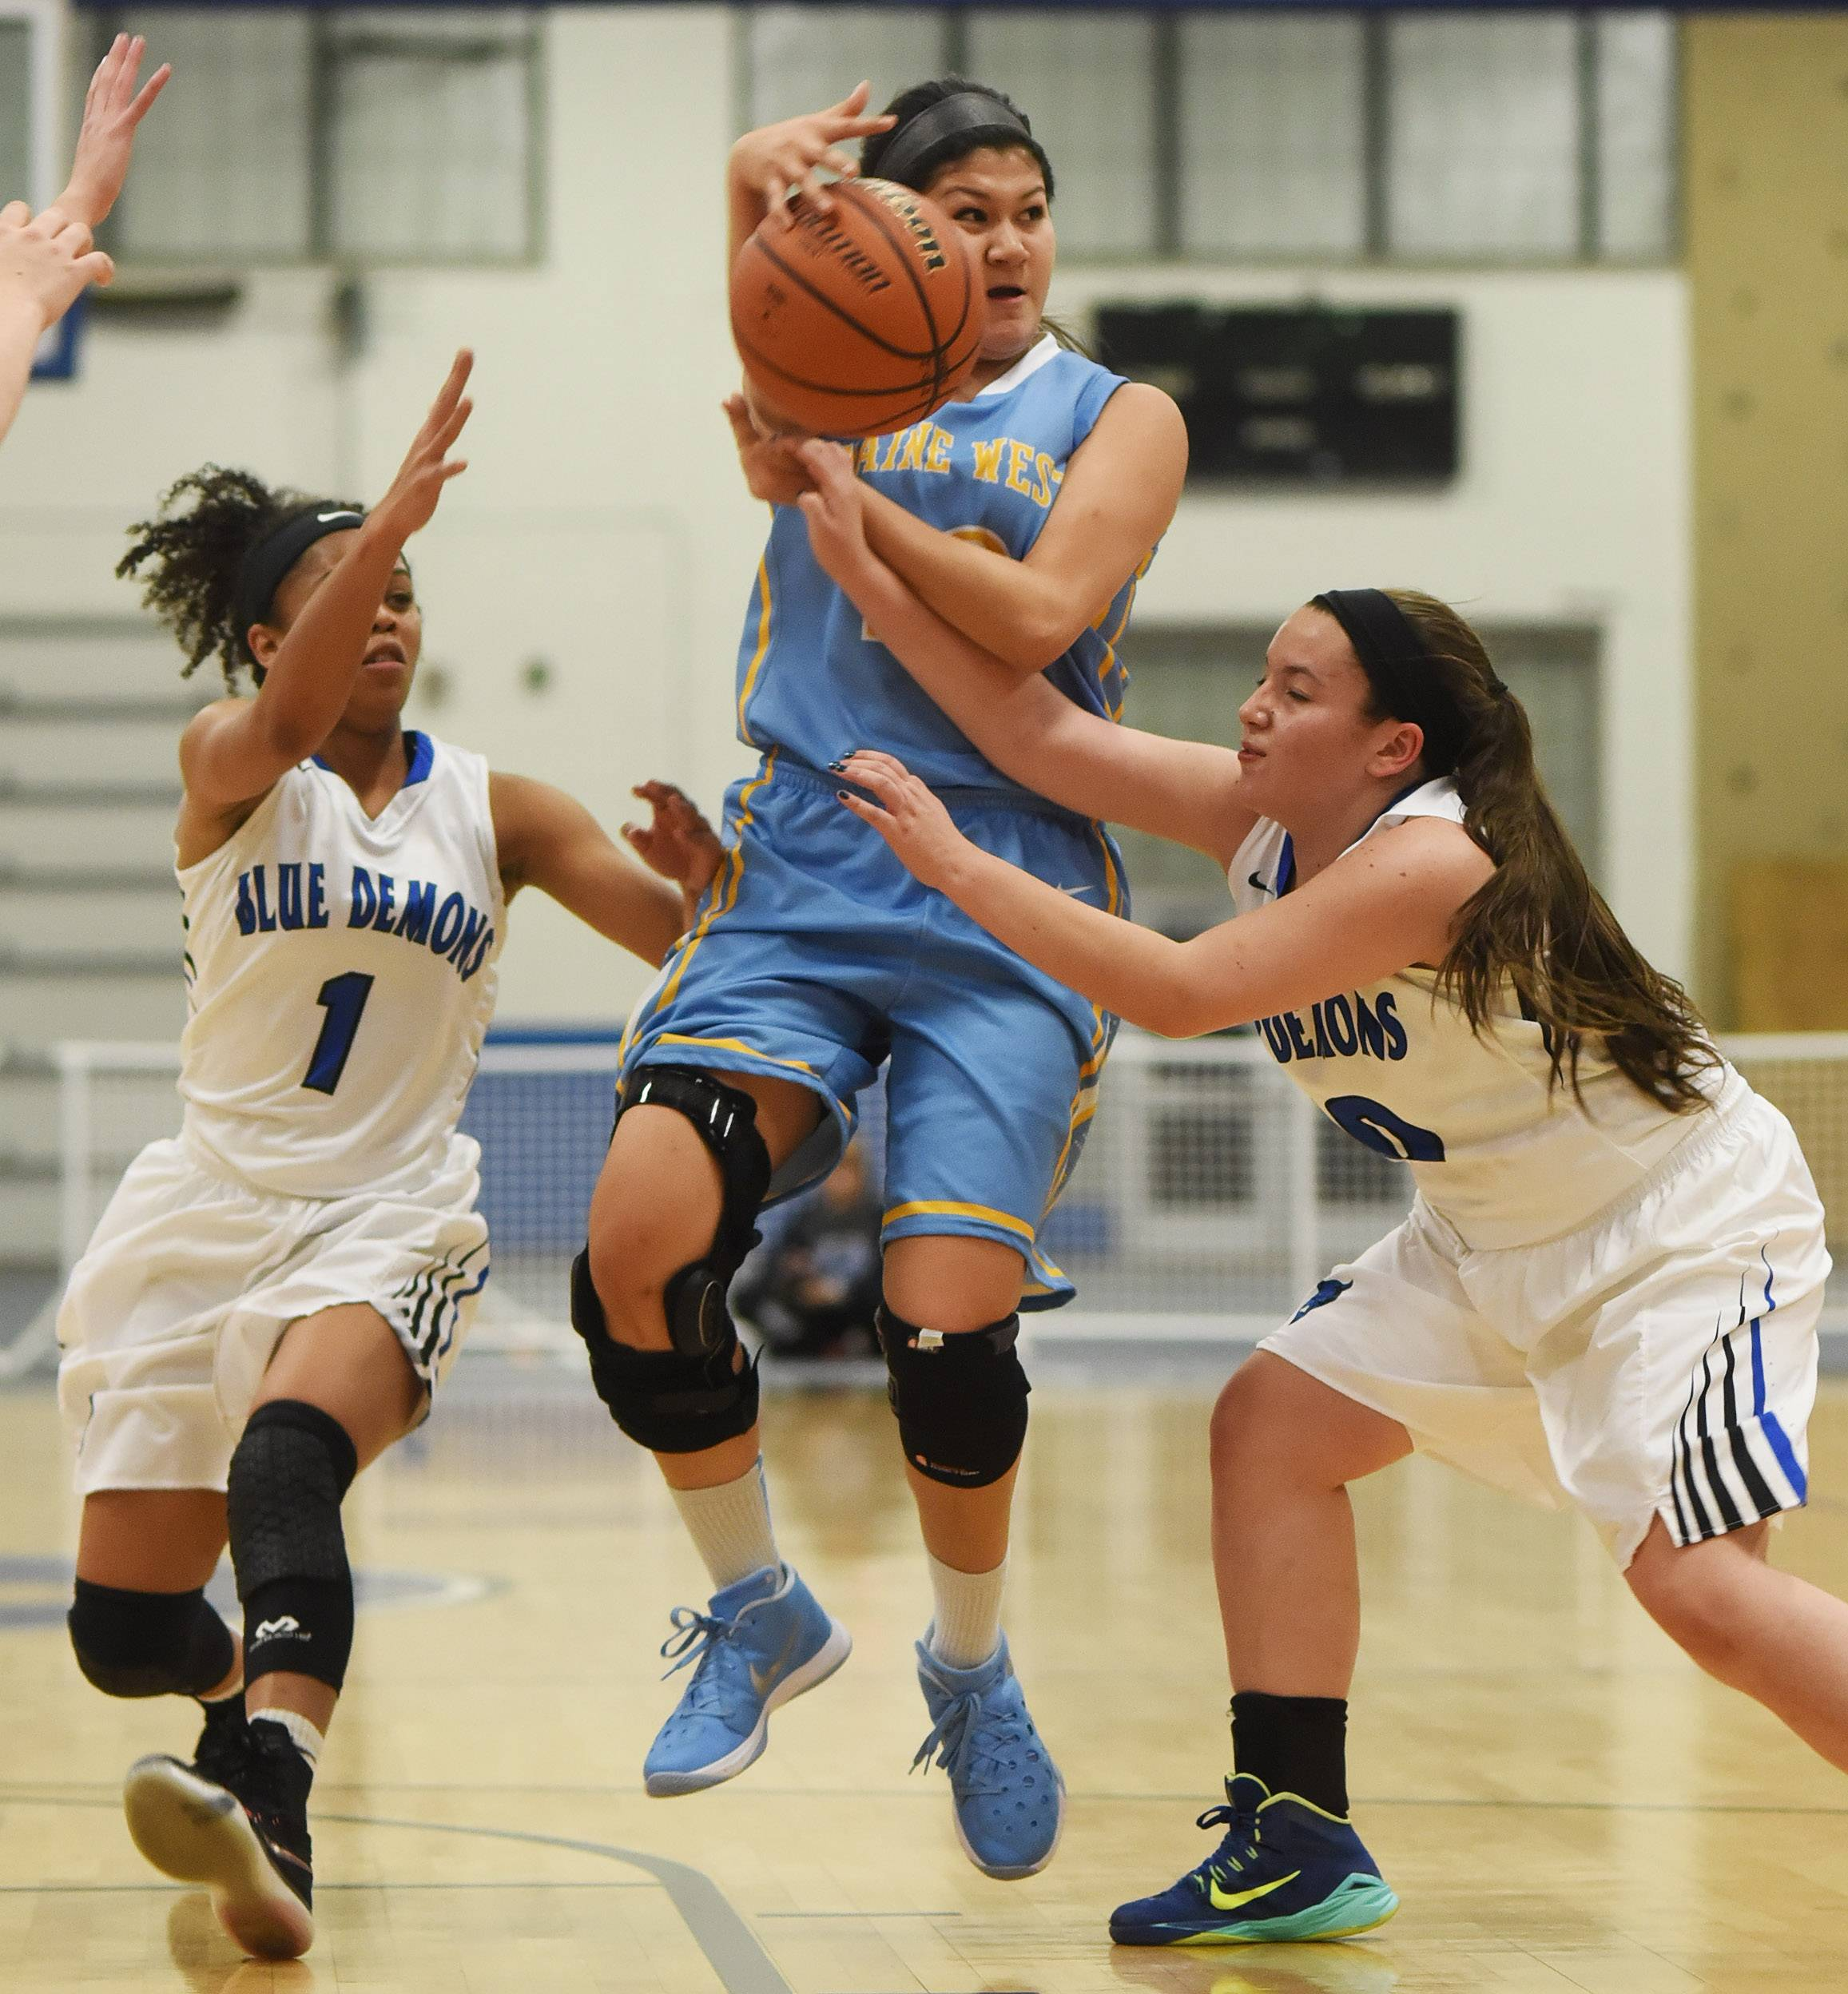 Another rally, and another Maine West victory